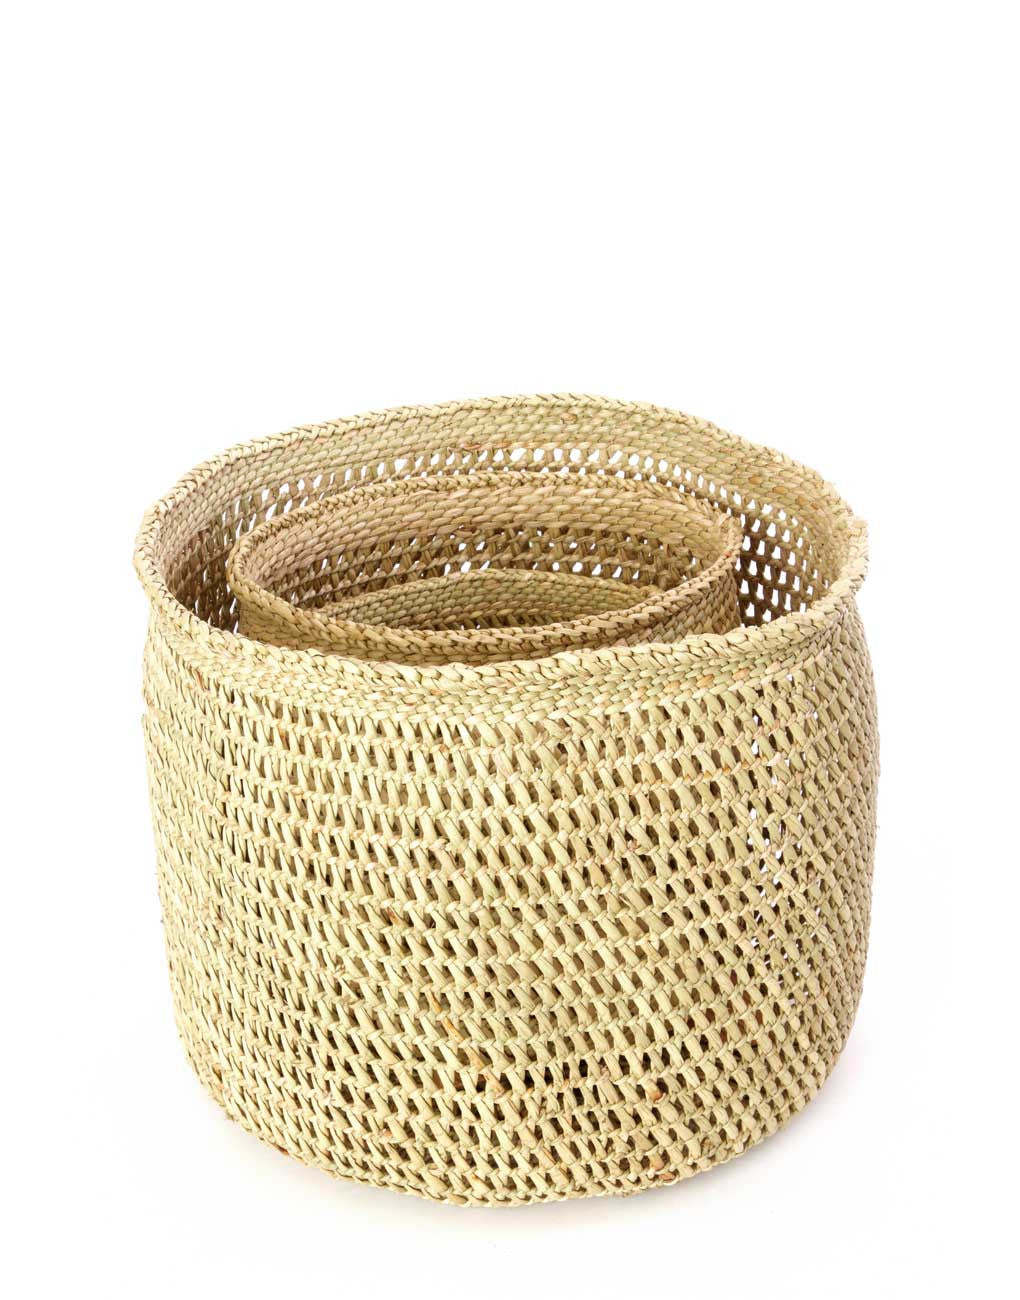 Fair Trade, Handwoven, Tan Iringa Basket